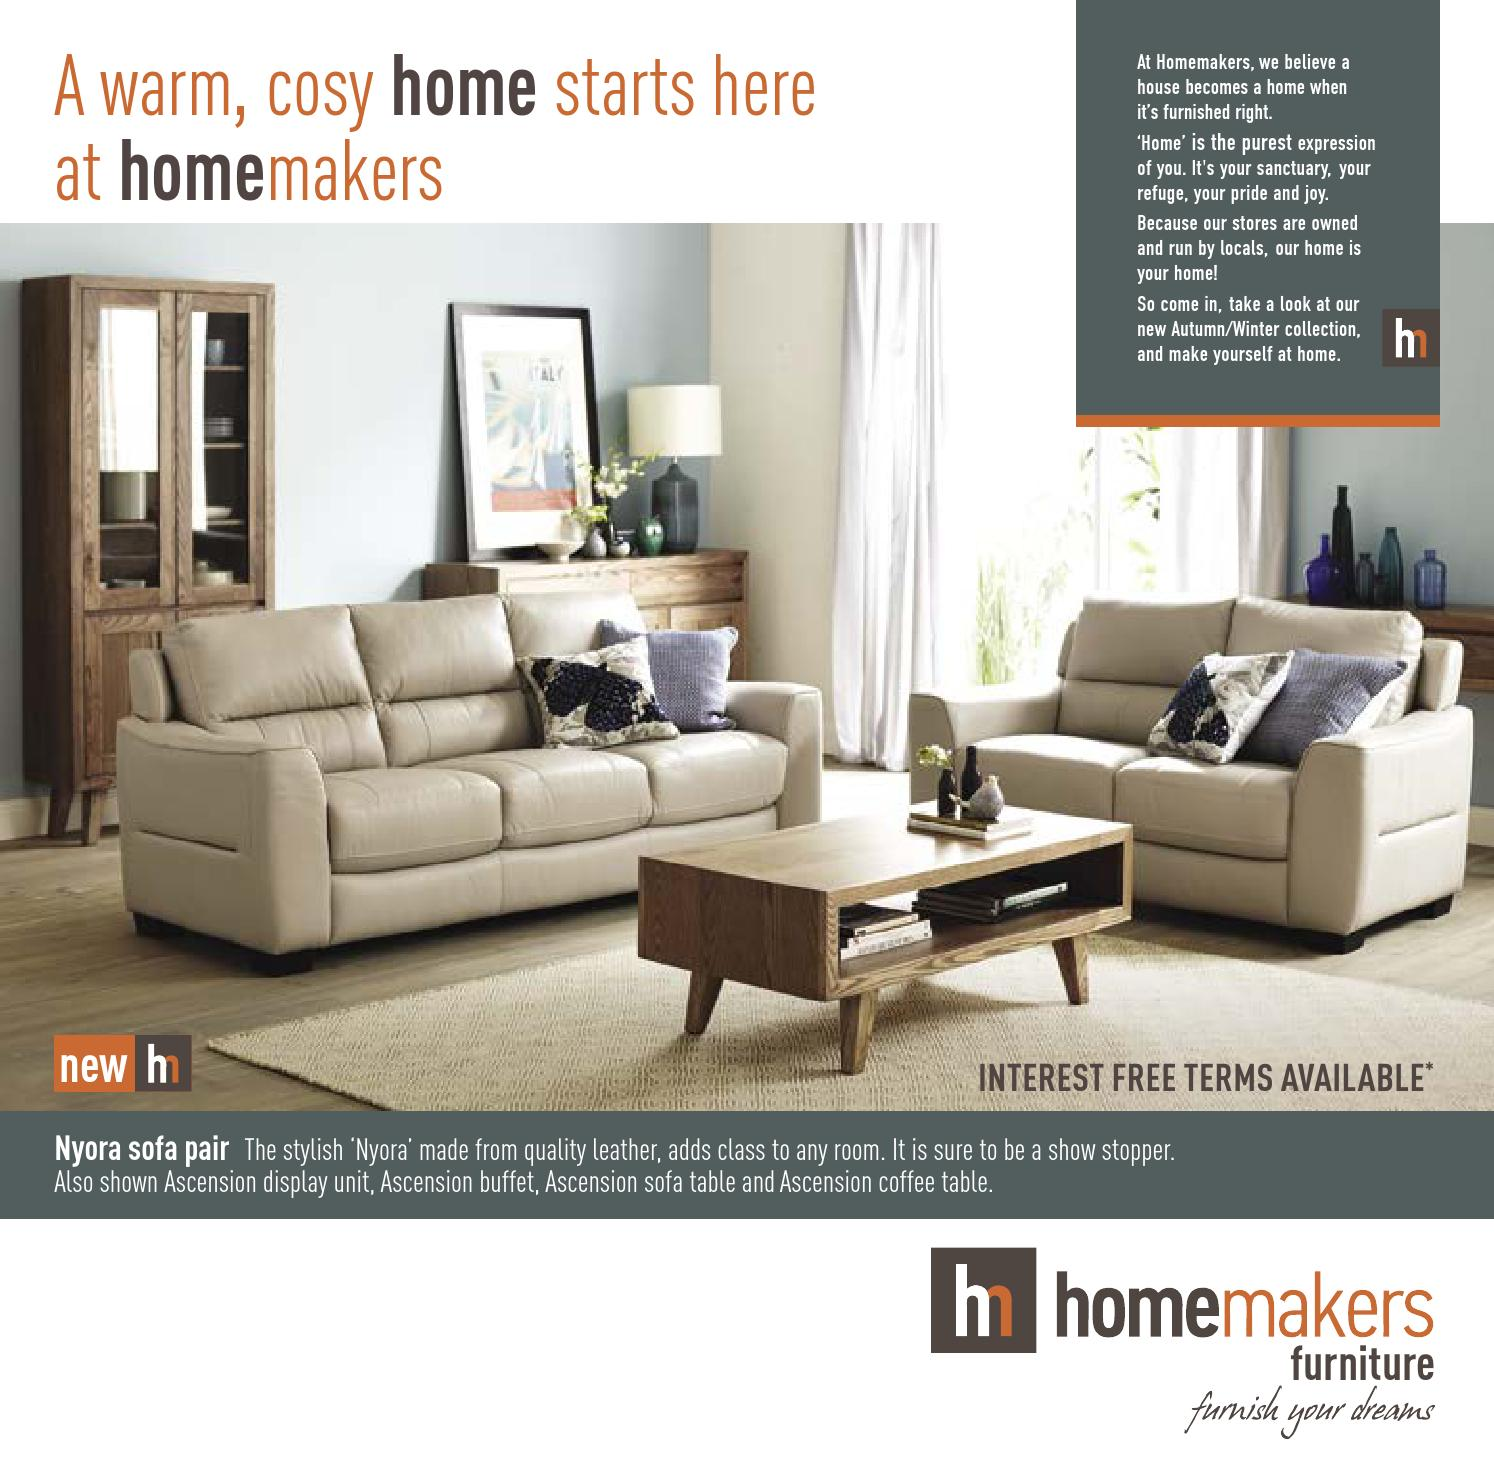 Homemakers Furniture Catalogue E04 15 By Homemakers Furniture Issuu